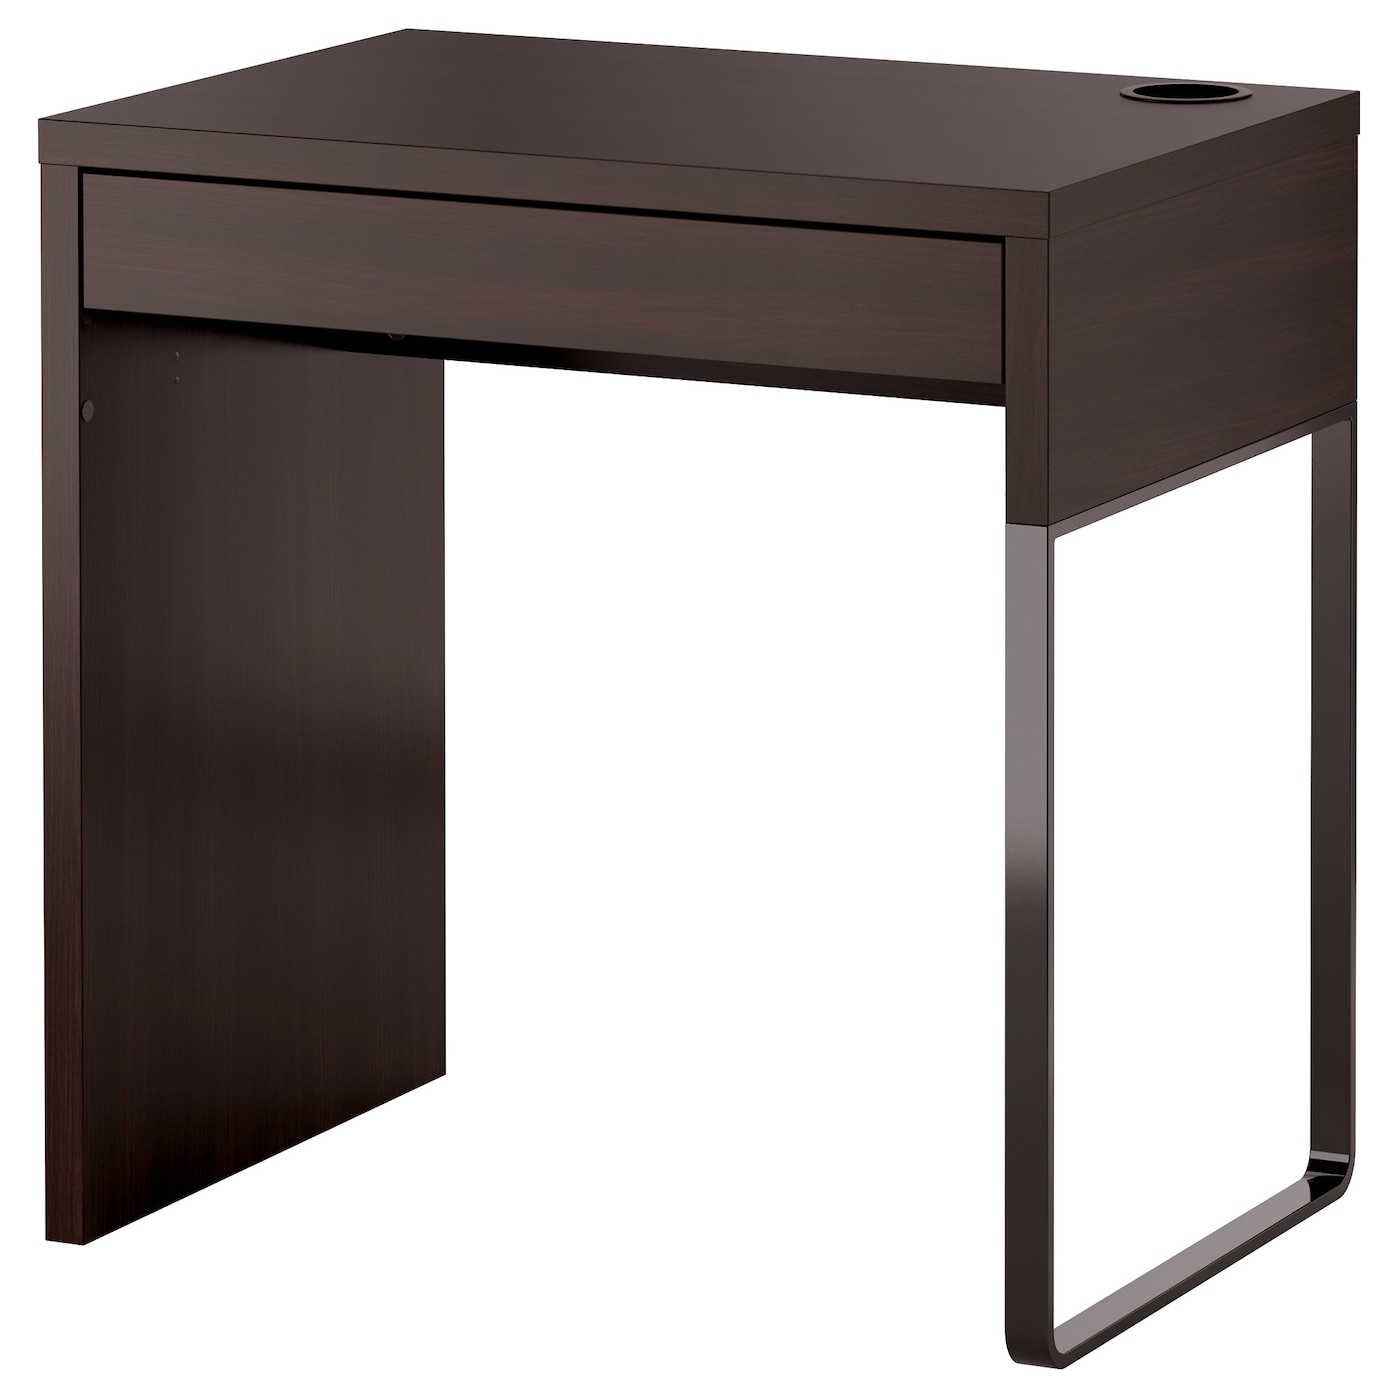 Micke desk black brown 73x50 cm ikea for Ikea desk black